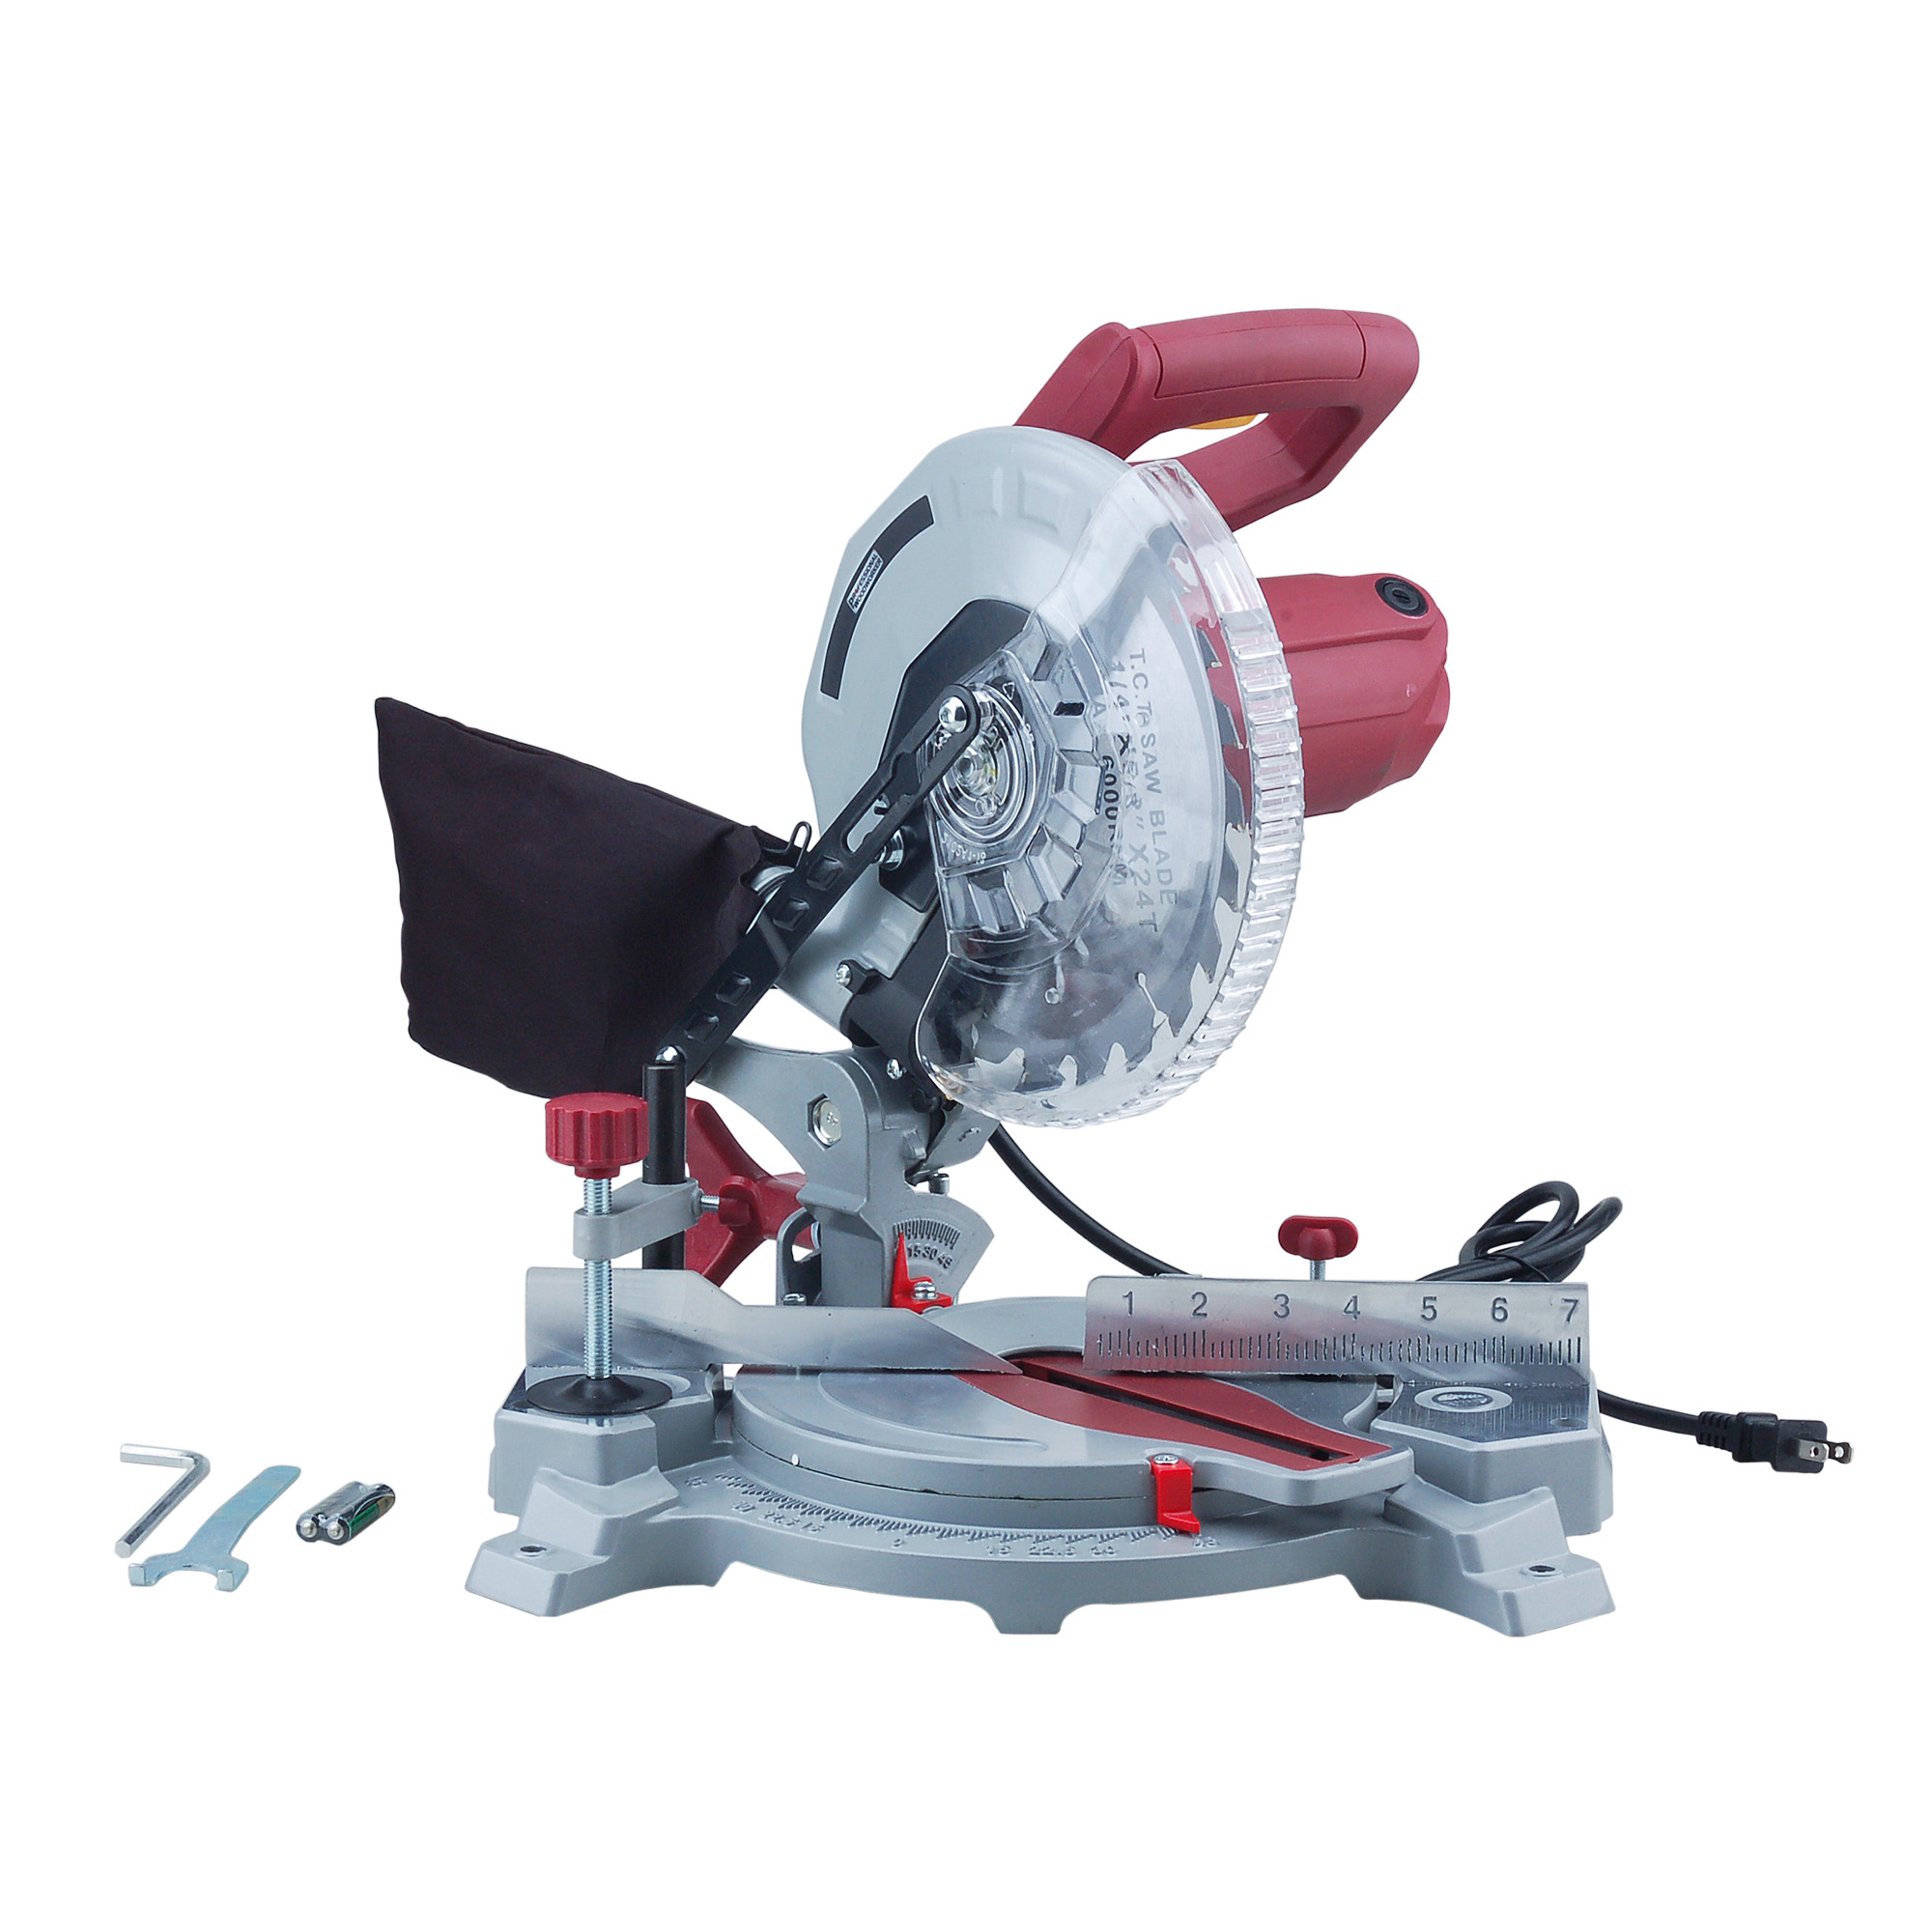 "Professional Woodworker 8 1 4"" Compound Miter Saw with Laser Guide by NATI LLC"